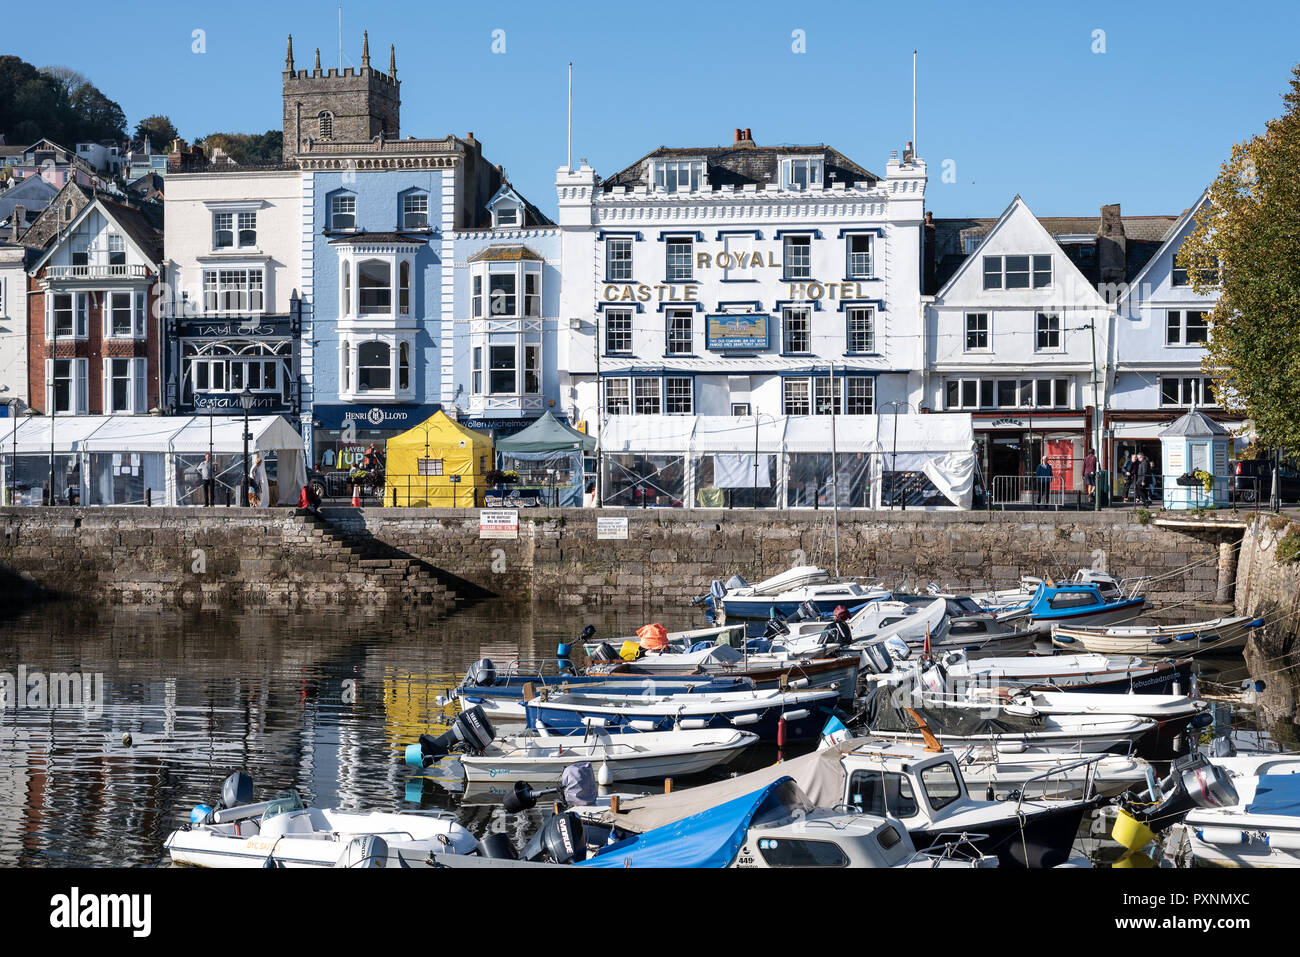 The Royal Castle Hotel overlooking the marina at Dartmouth, Devon, UK Stock Photo